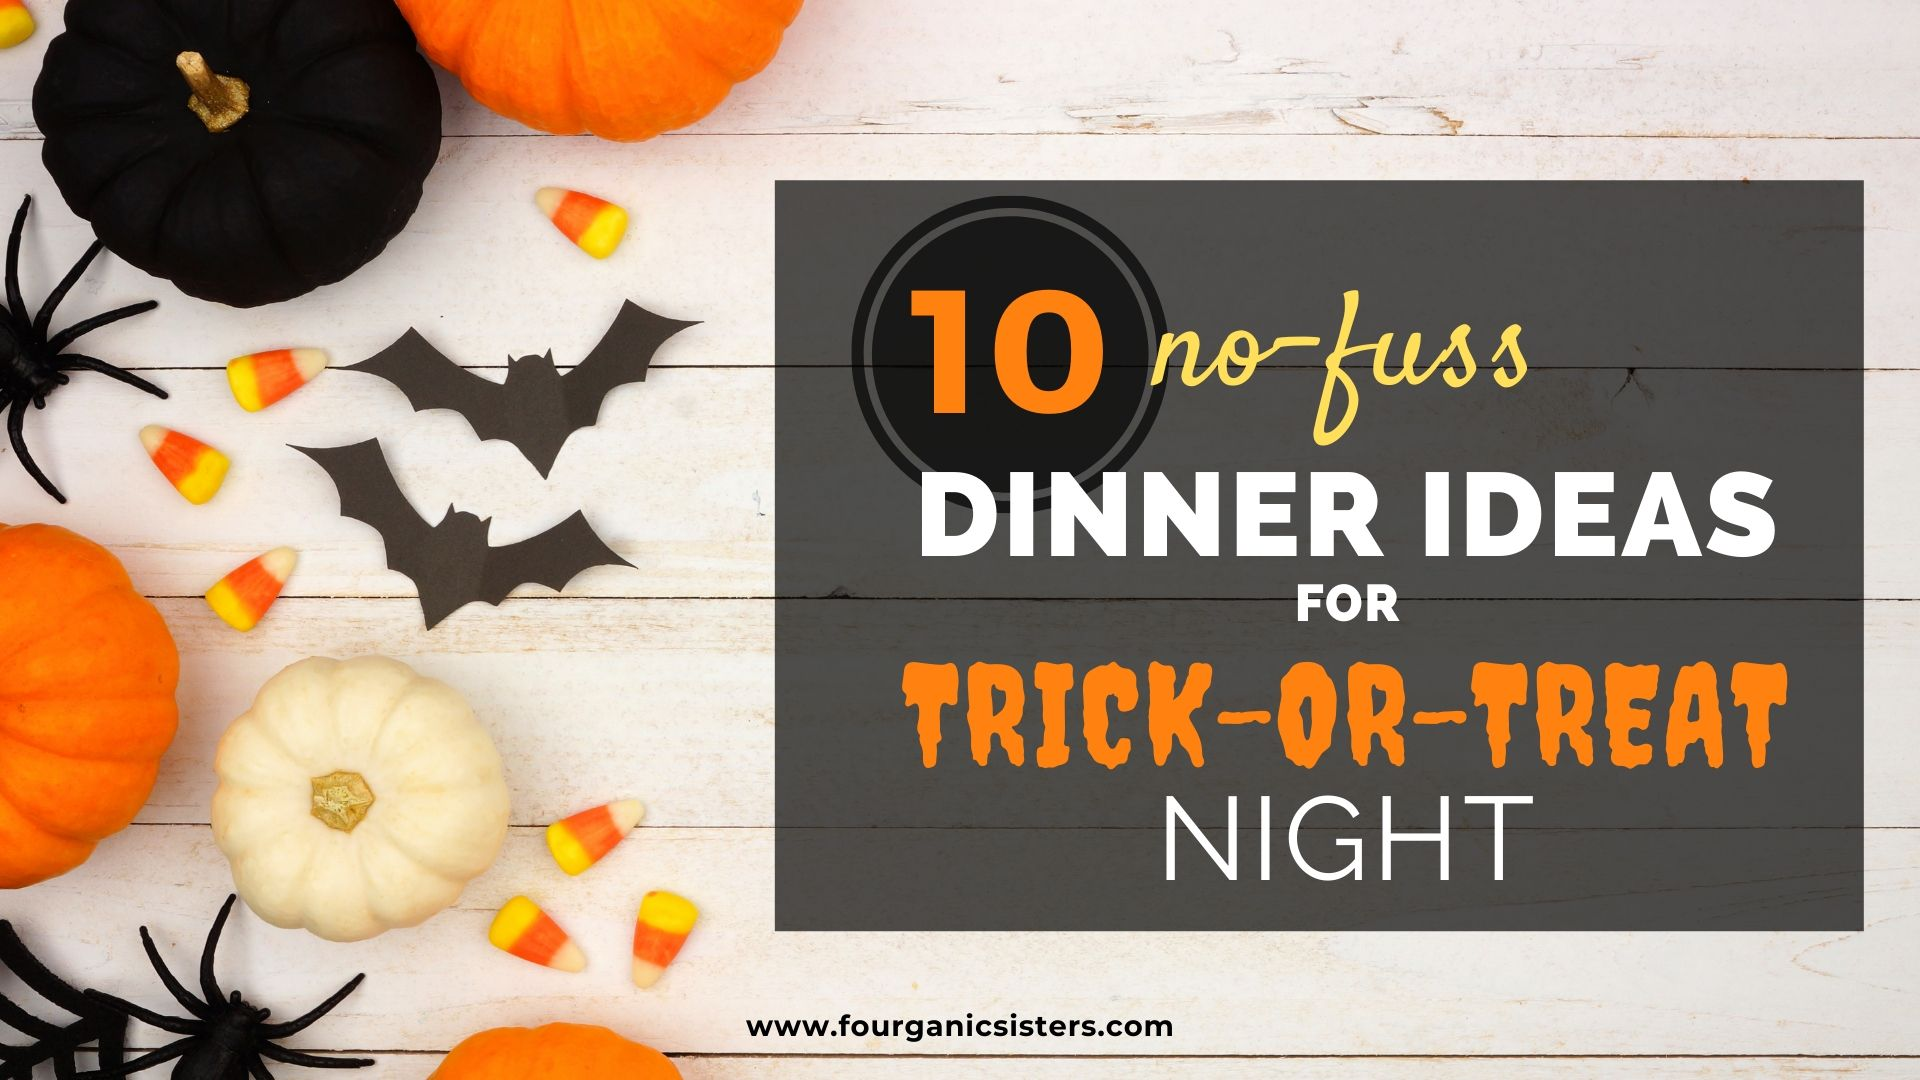 fourganic sisters easy halloween dinner ideas